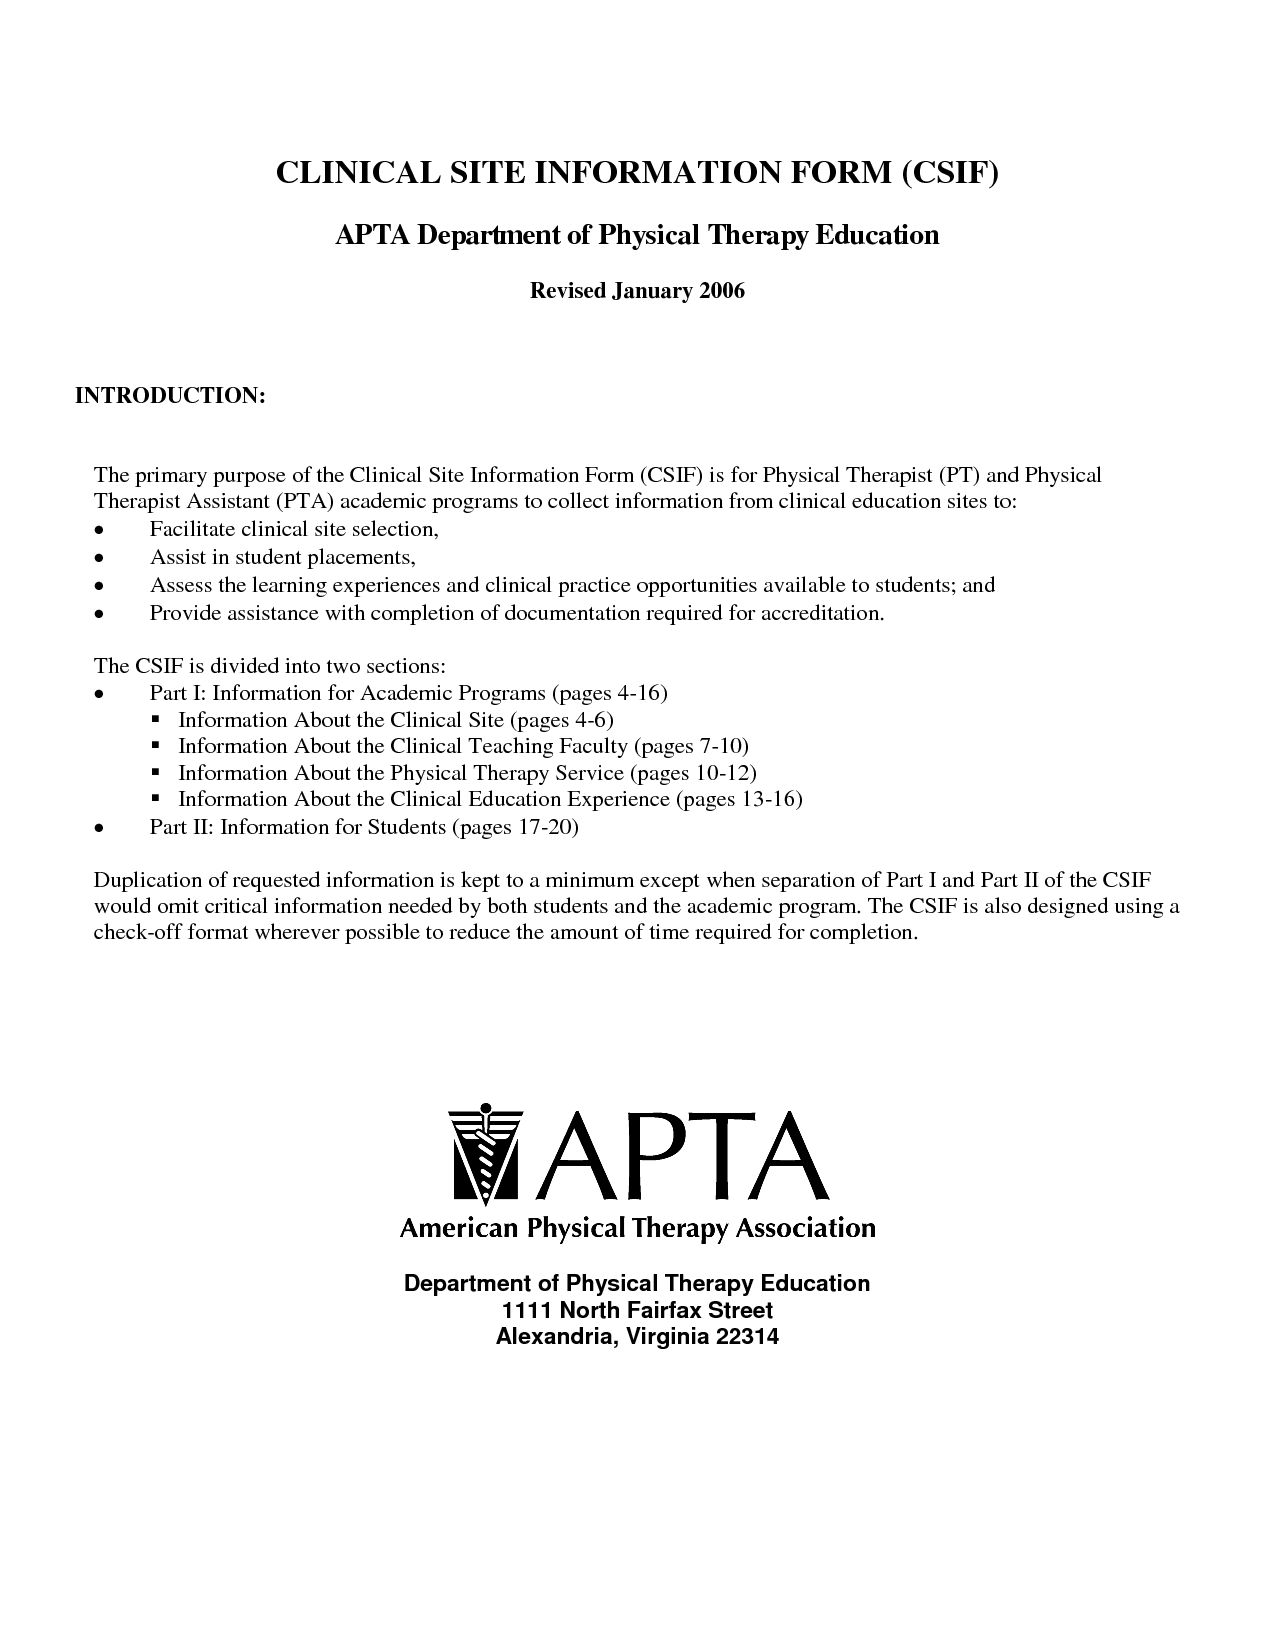 Apple physical therapy -  Clinical Site Information Form For Apta Department Of Physical Therapy With Introduction